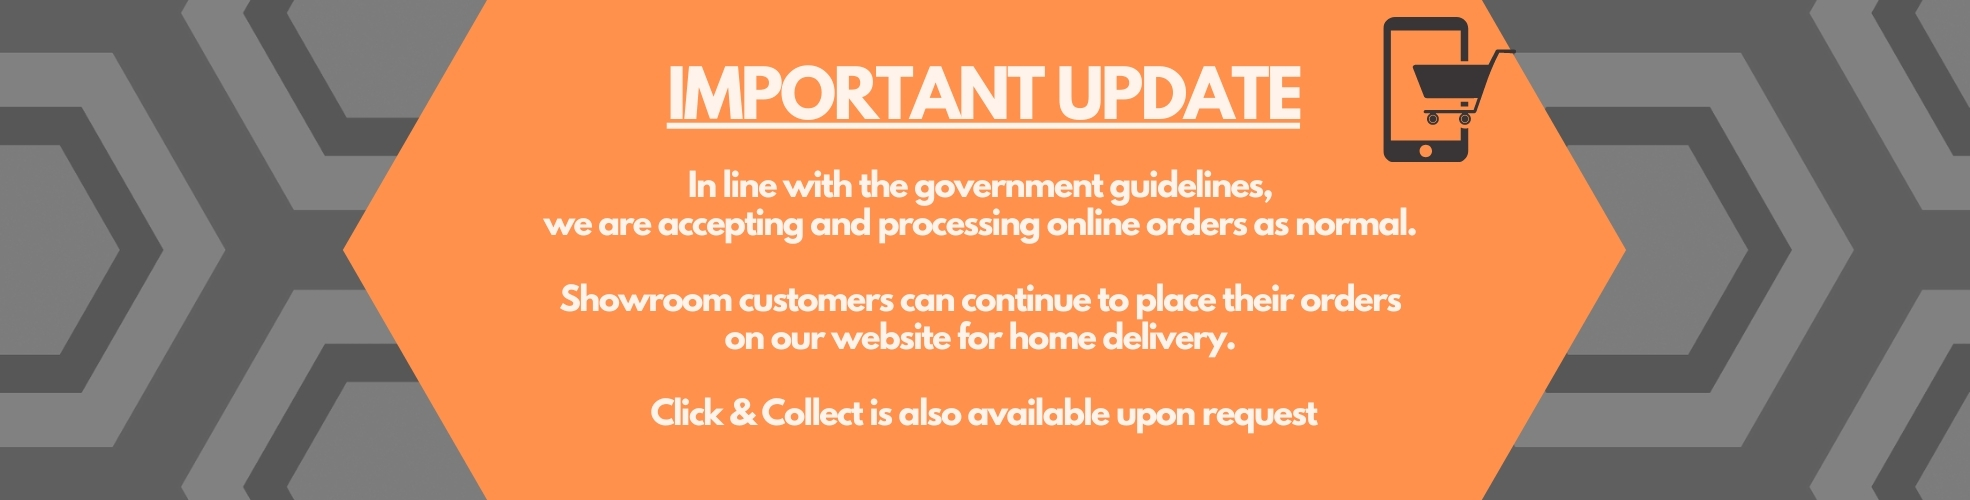 IMPORTANT UPDATE: In line with the government guidelines, we are accepting and processing online orders as normal. Showroom customers can continue to place their orders on our website for home delivery. Click & Collect is also available upon request.